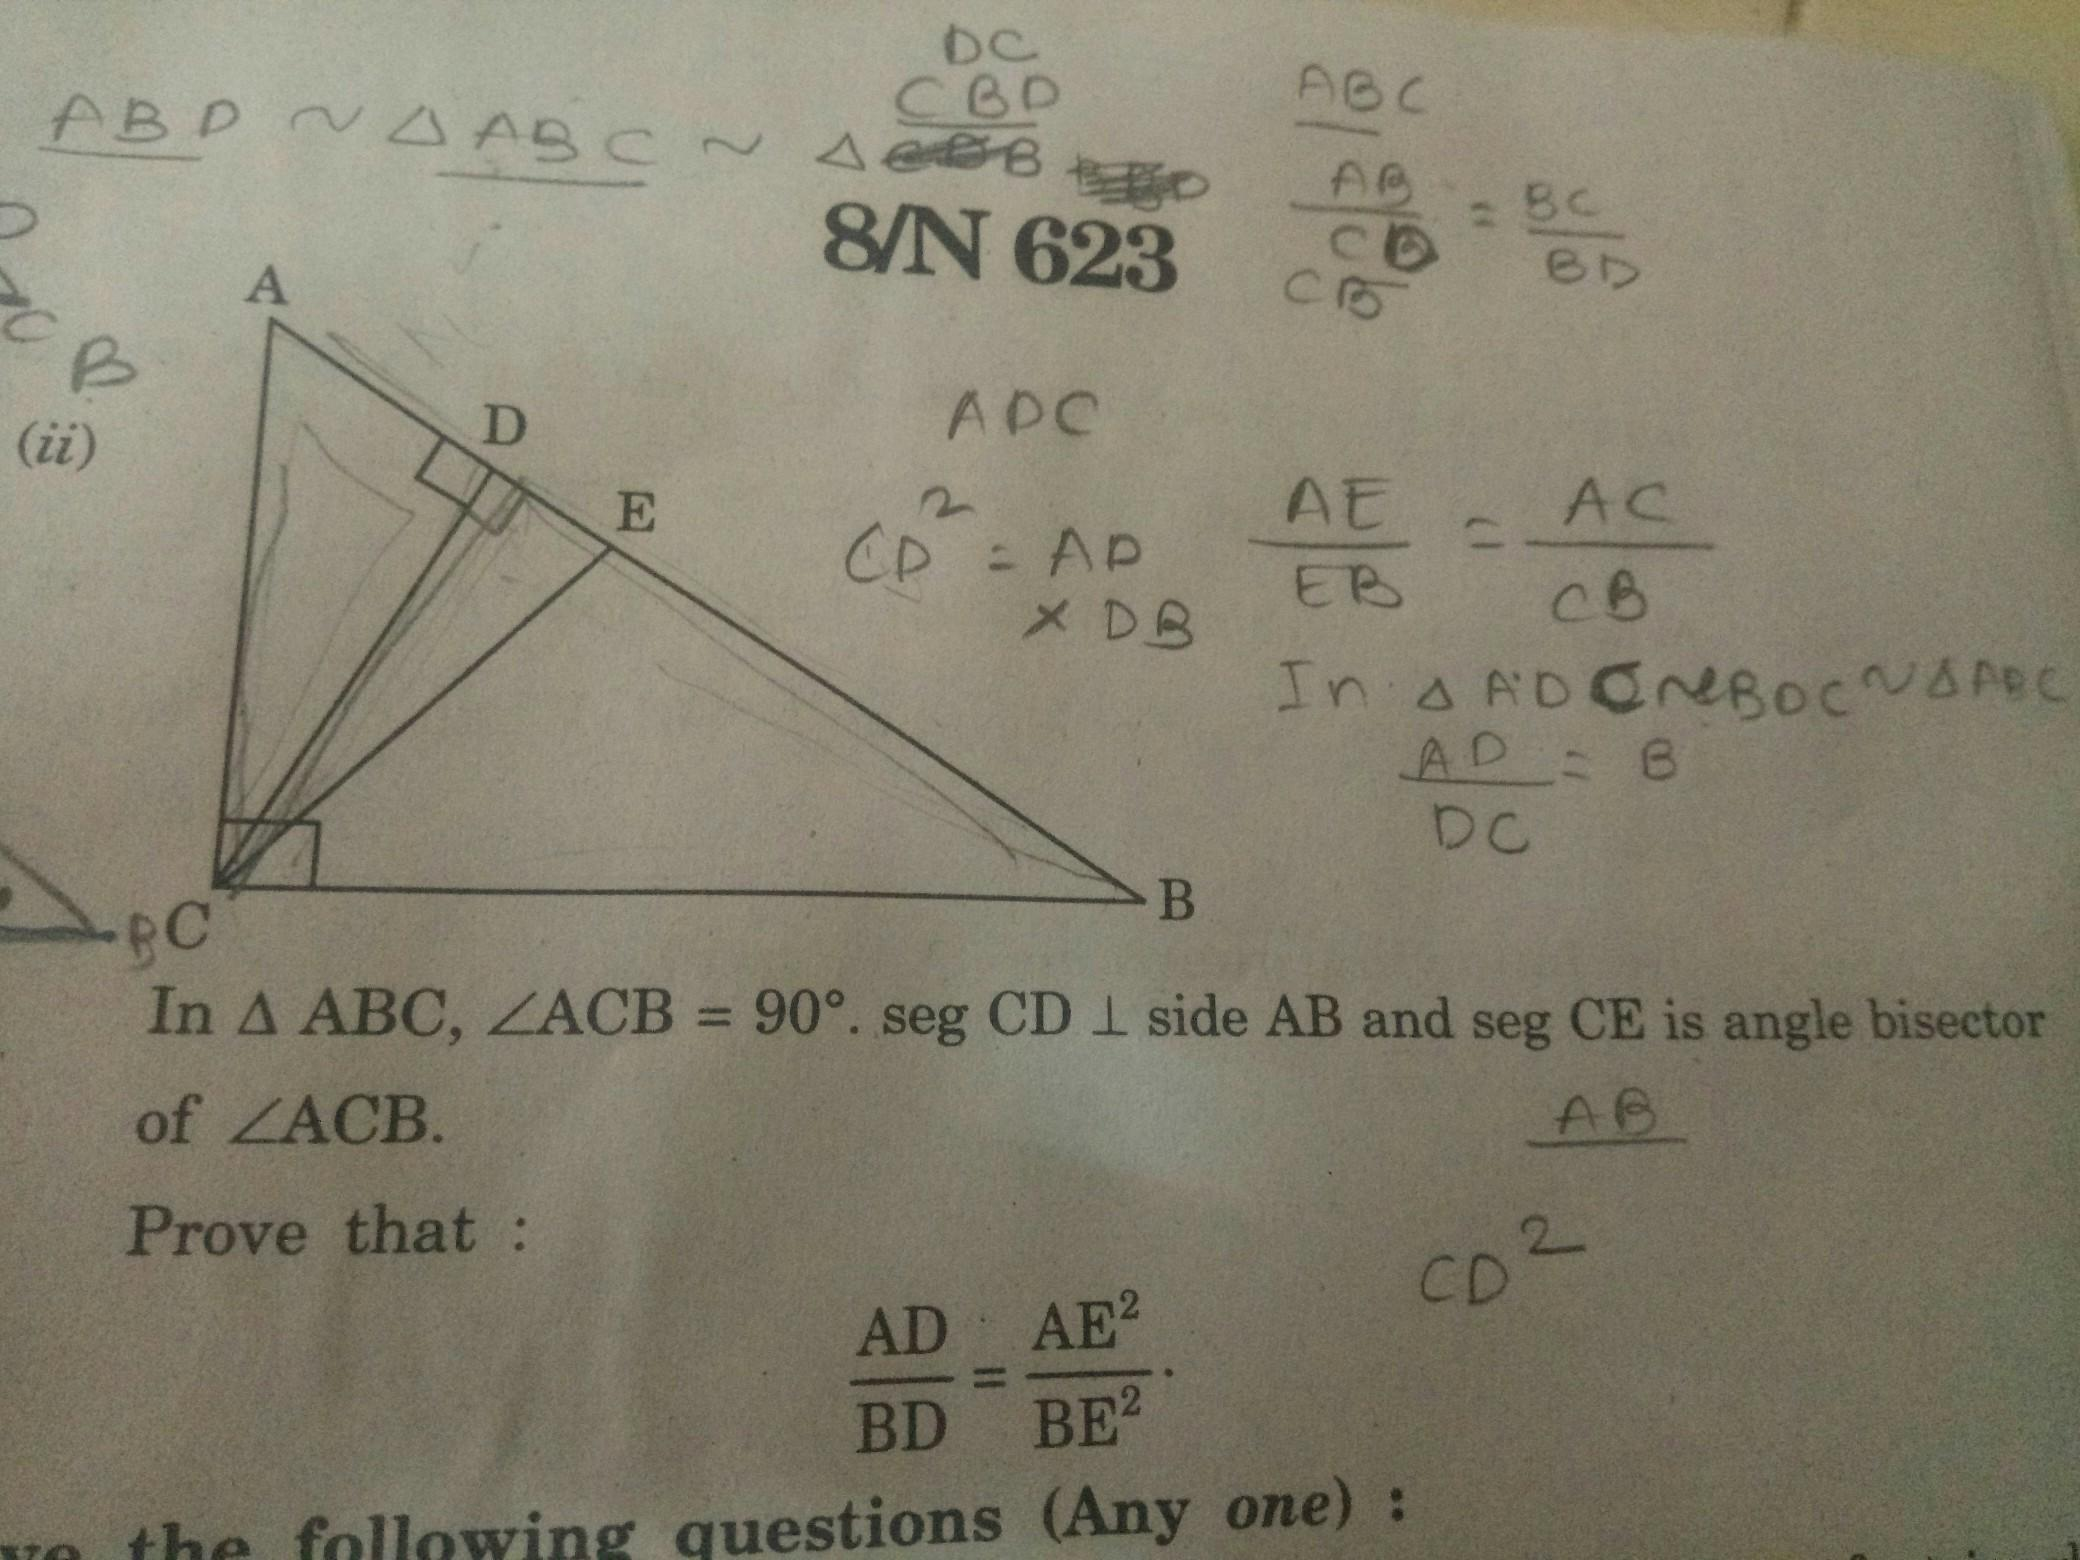 In Triangle Abc Angle Acb Is Equal To 90 Degree Seg Cd Is